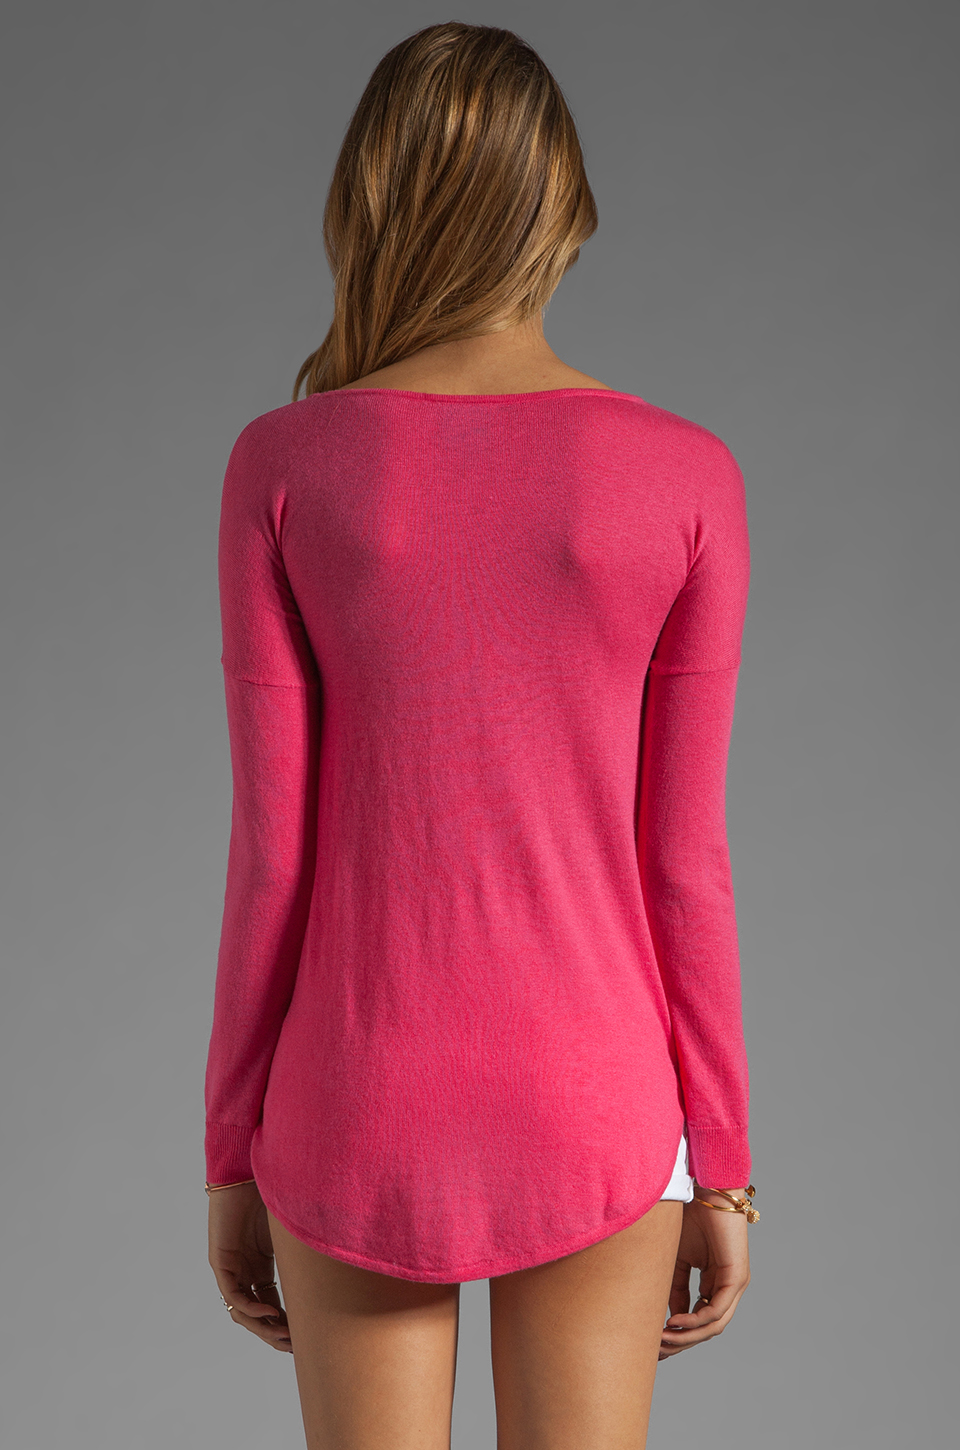 C&C California Long Sleeve Dolman Shirt Tail Sweater in Fuchsia